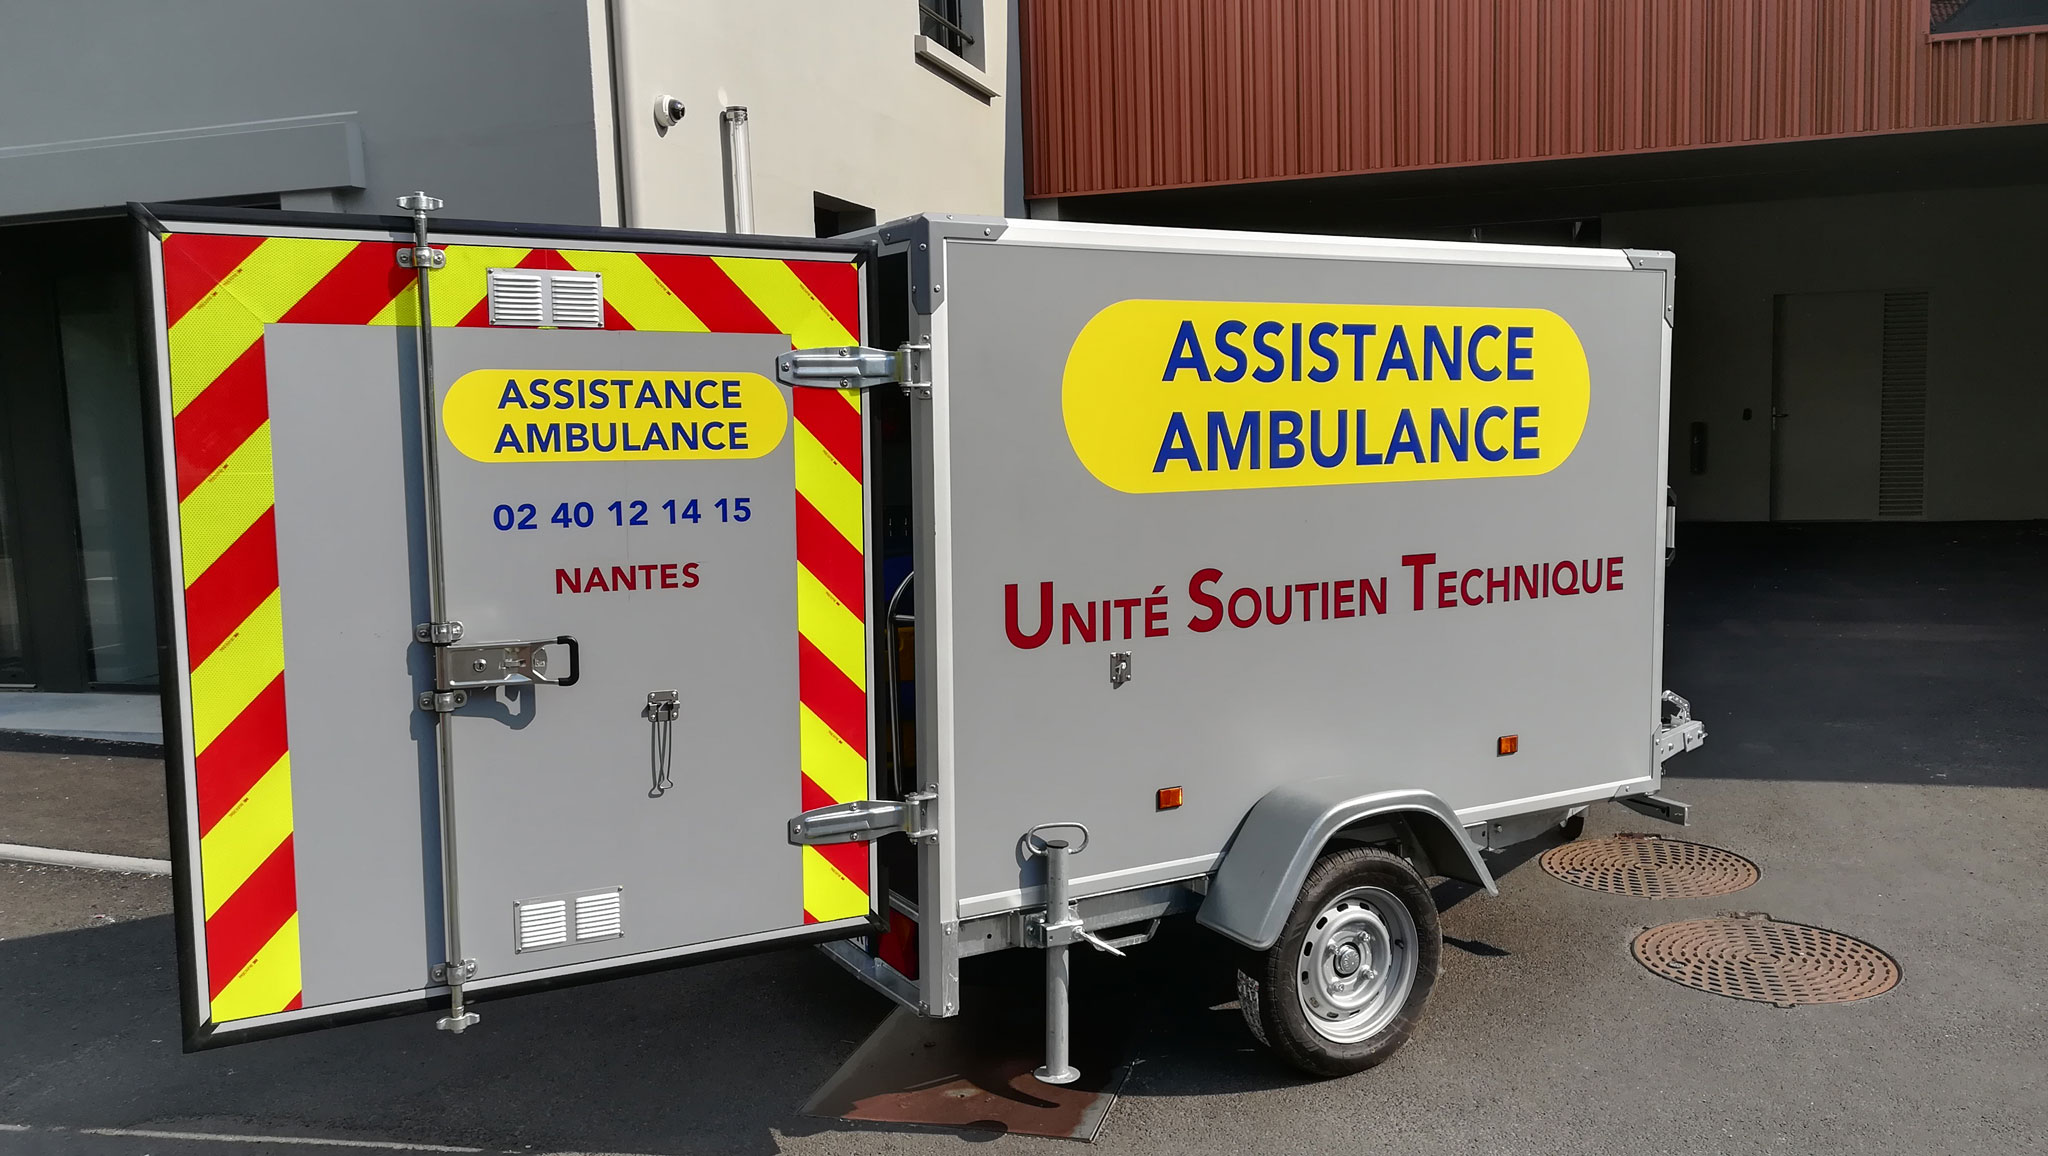 ambulancier, transport bariatrique - Assistance Ambulance